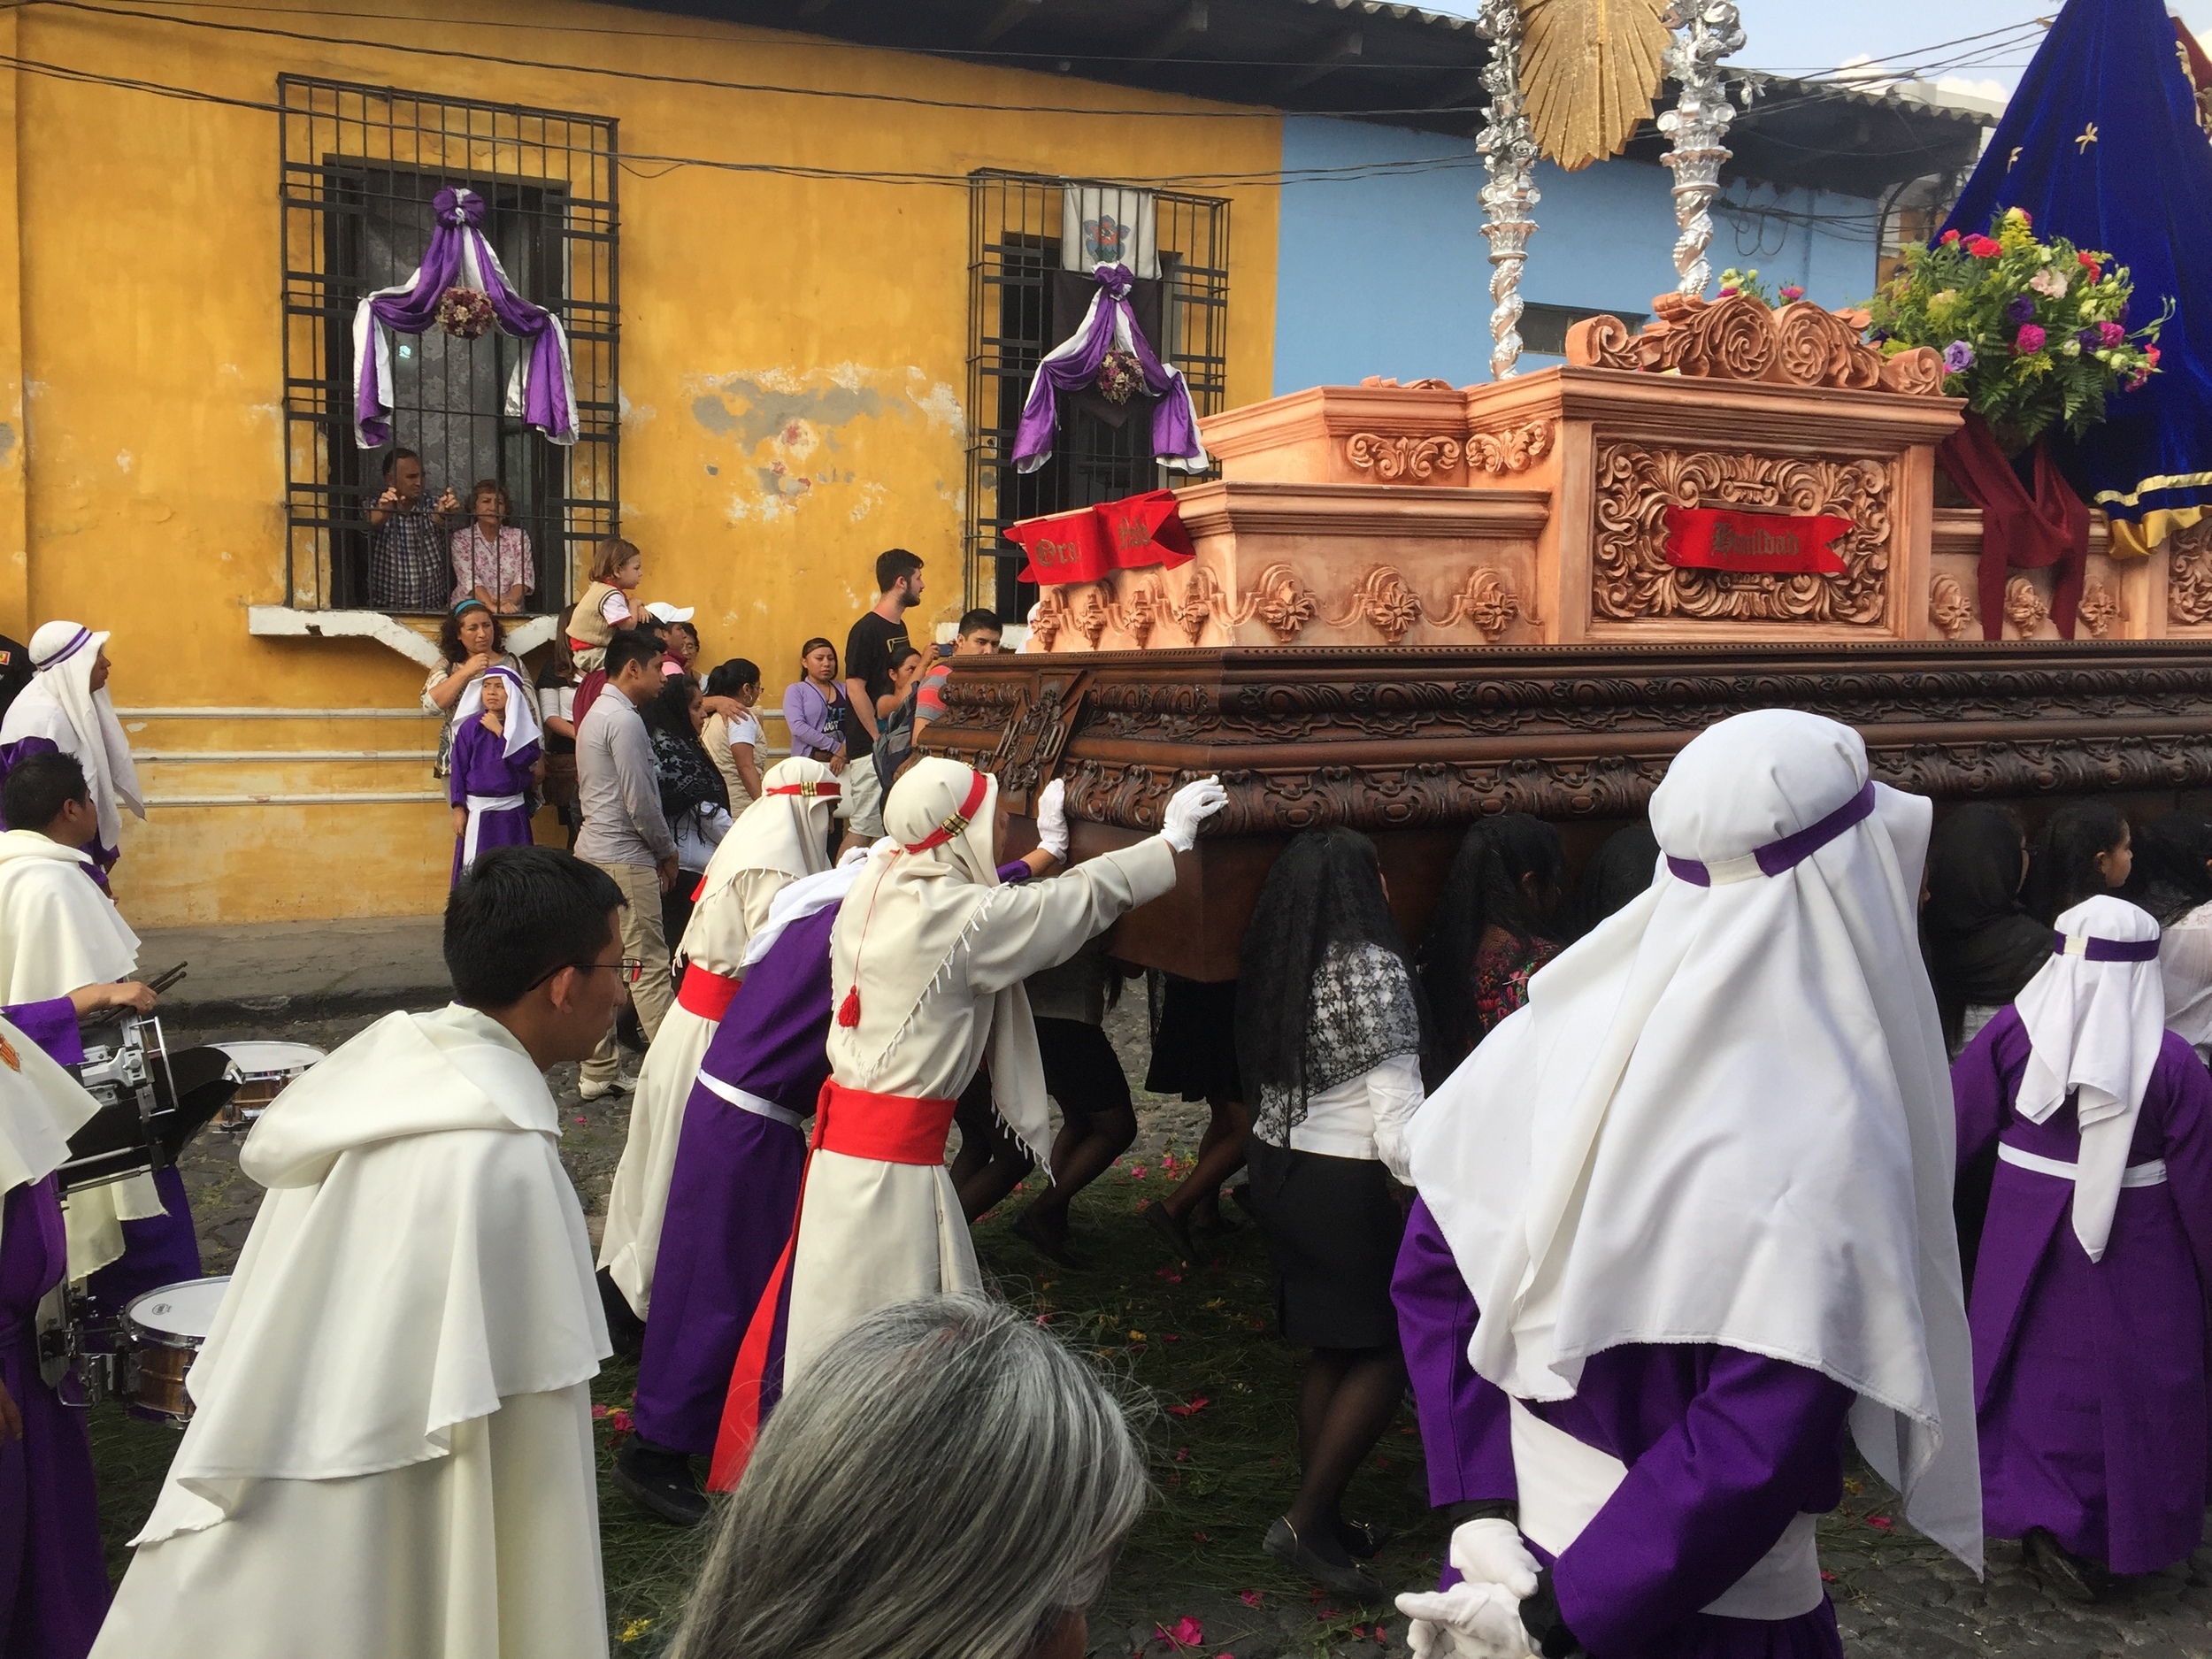 Semana Santa procession in full swing.